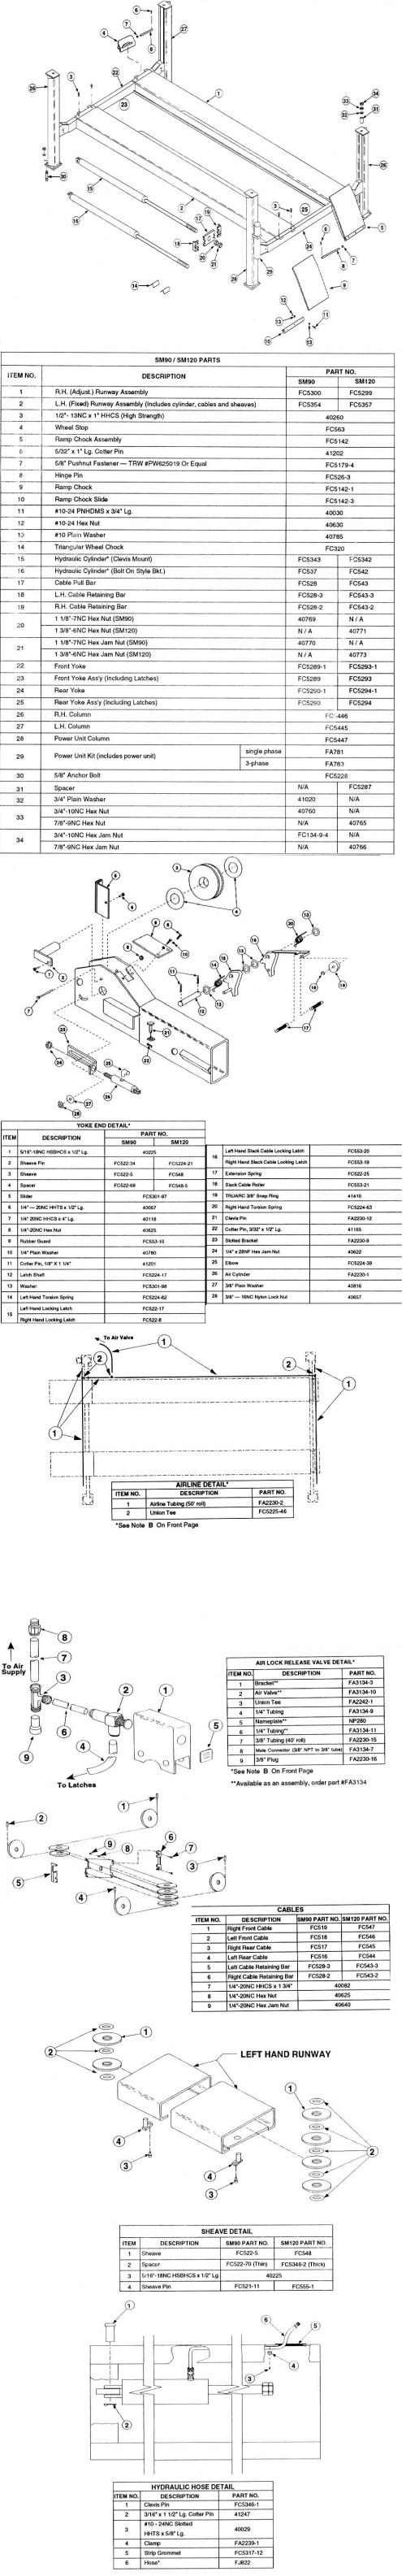 Rotary Lift Diagram - rotary lift hydraulic pump wiring